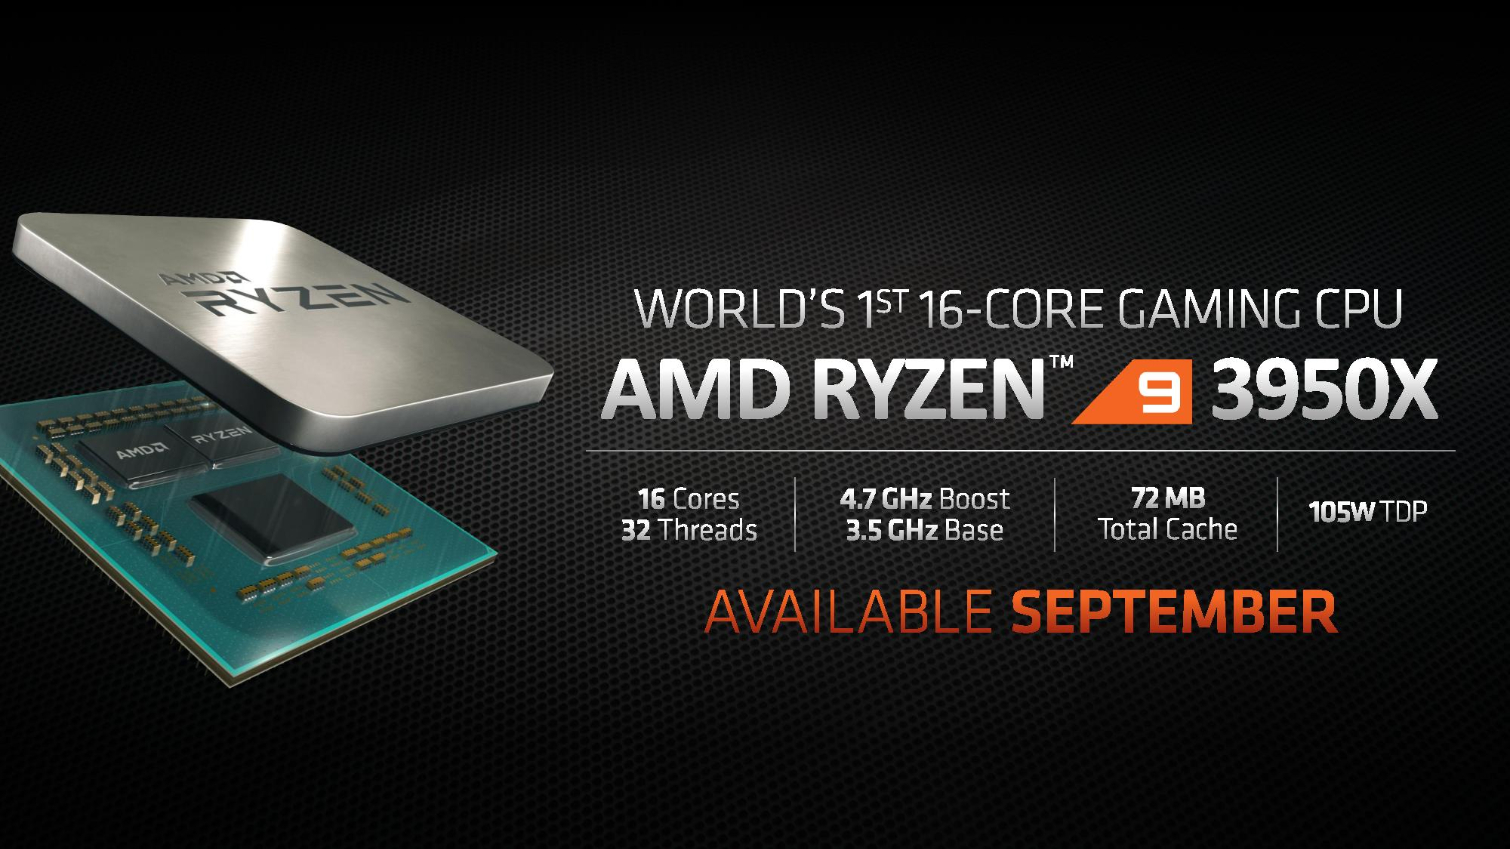 Amd Ryzen 9 3950x Announced With 16 Cores From Dream To Reality Igor Slab